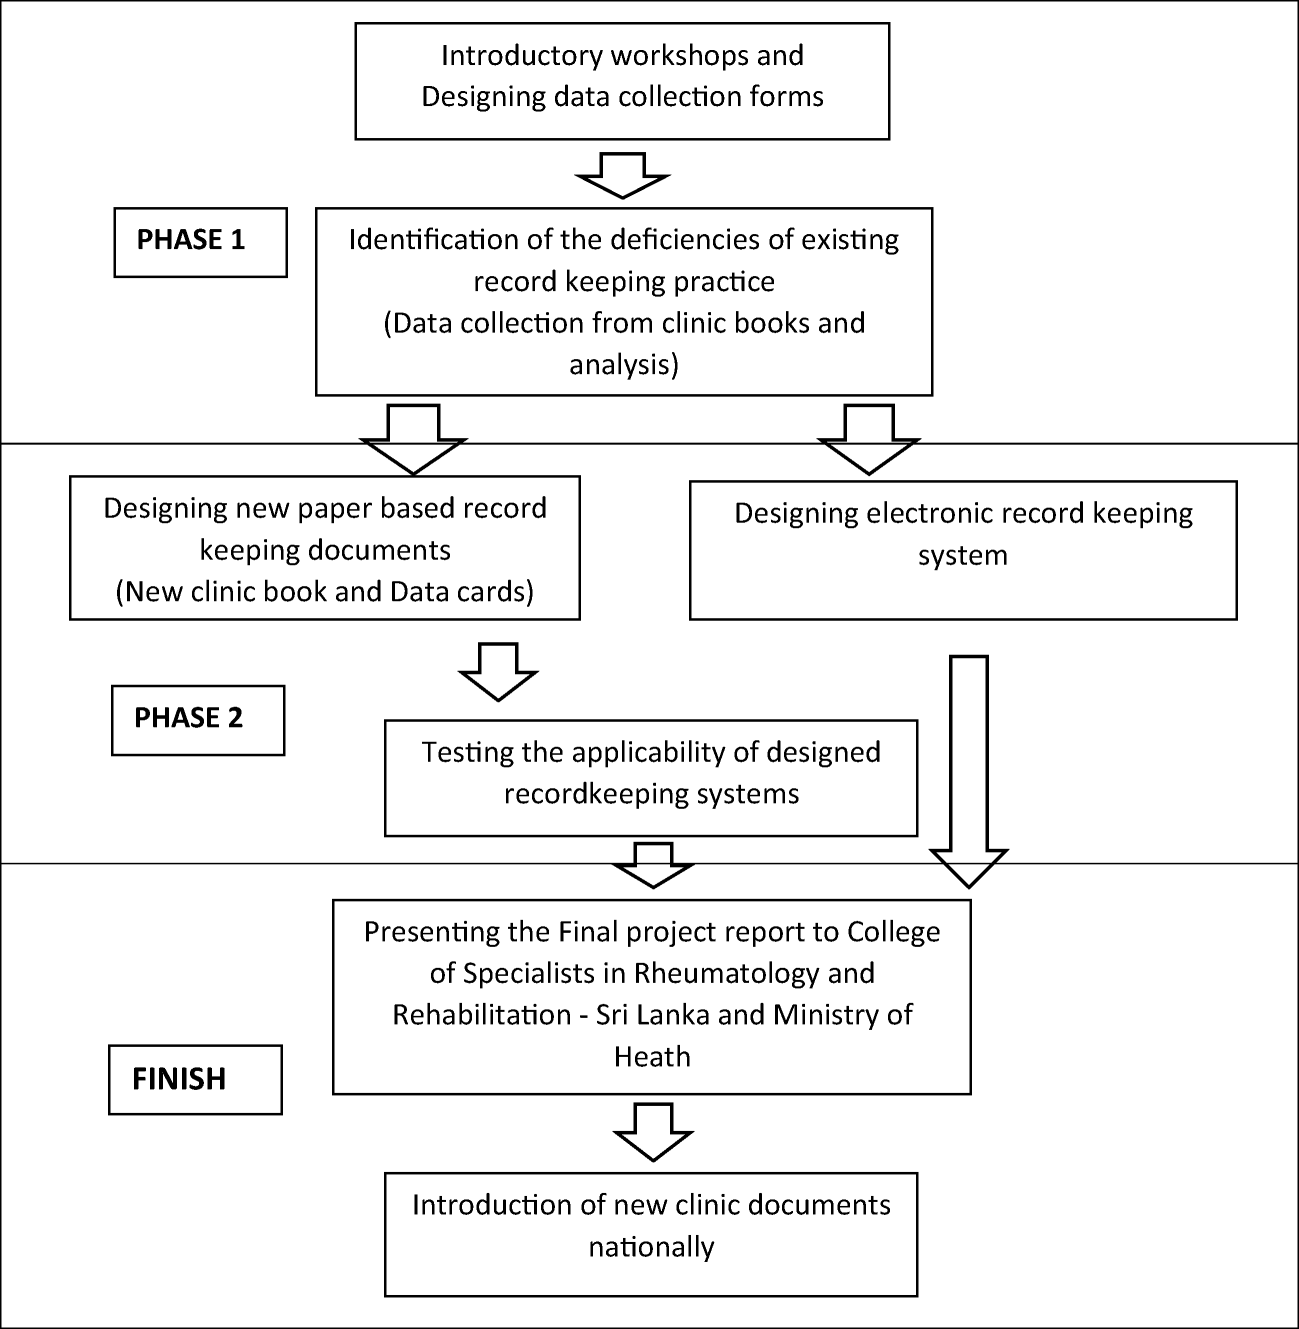 Introduction of a uniform record keeping practice for rheumatology